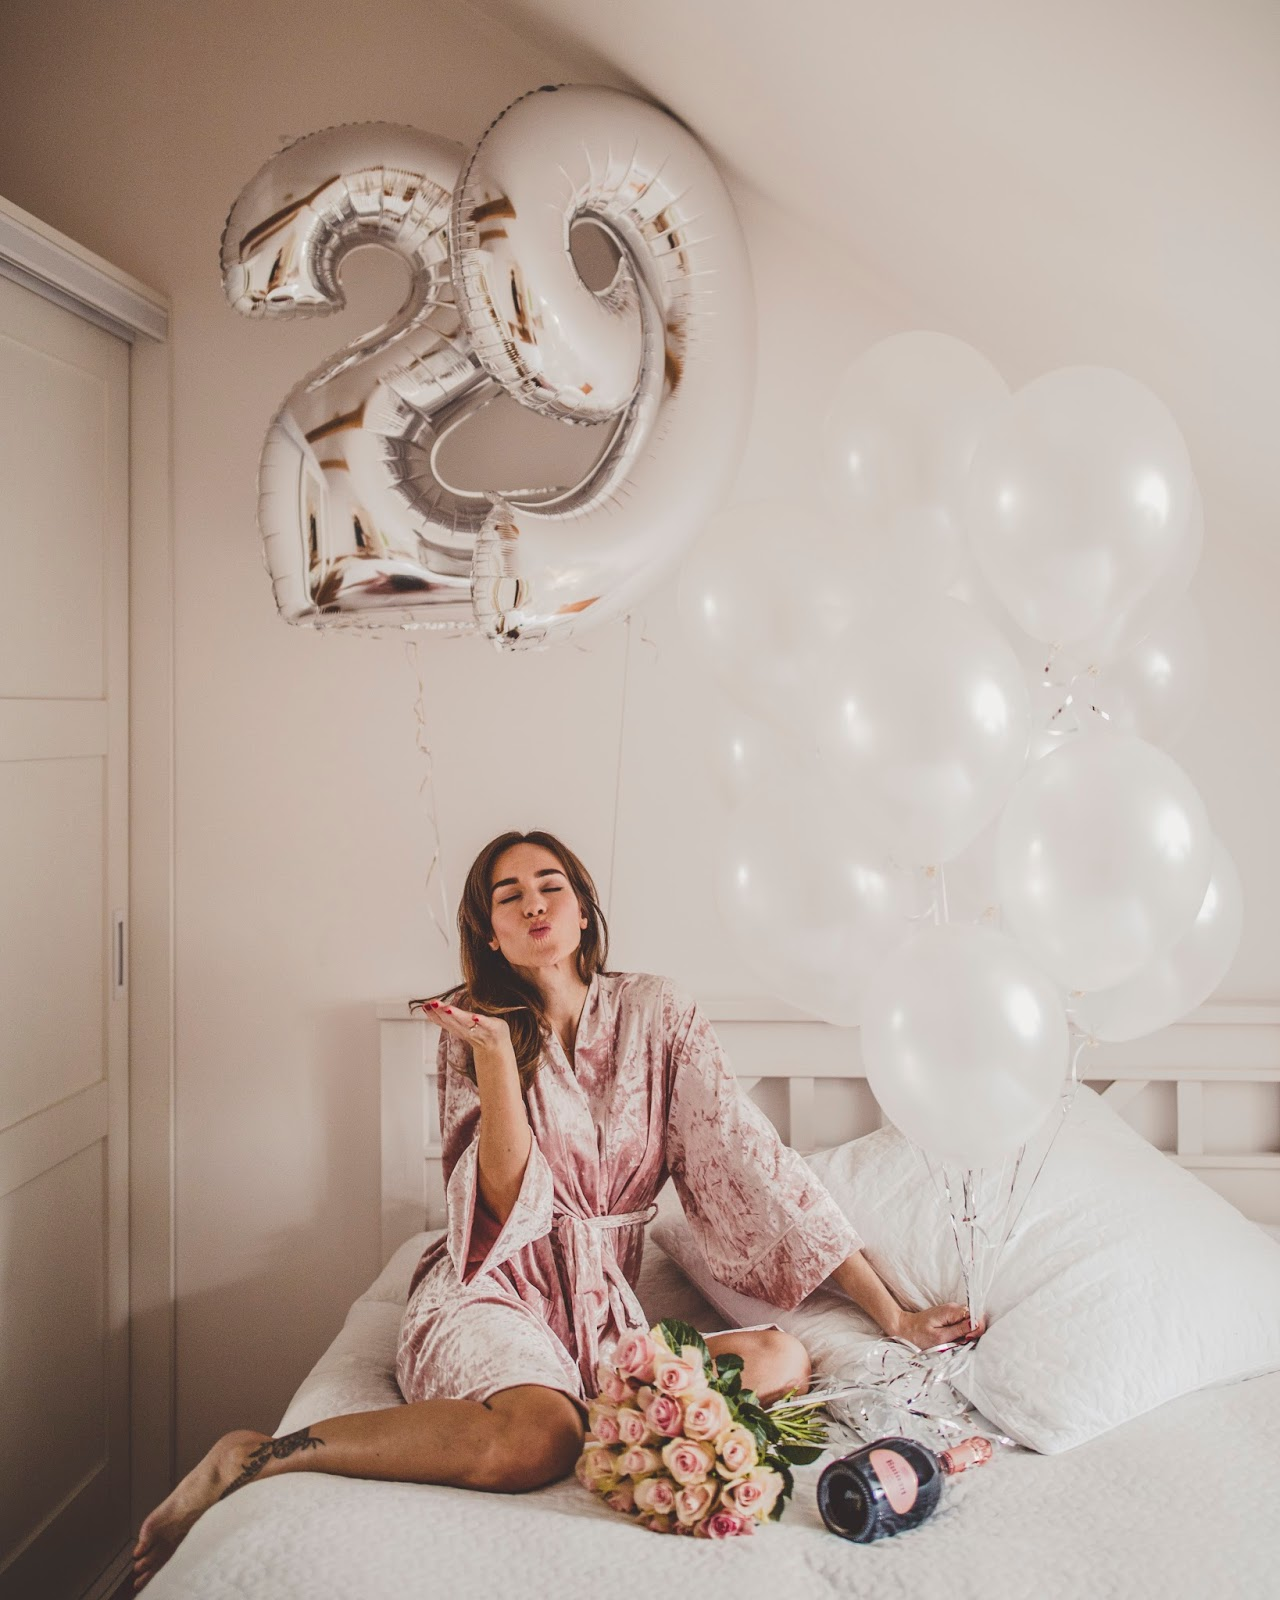 birthday photo flowers balloons champagne